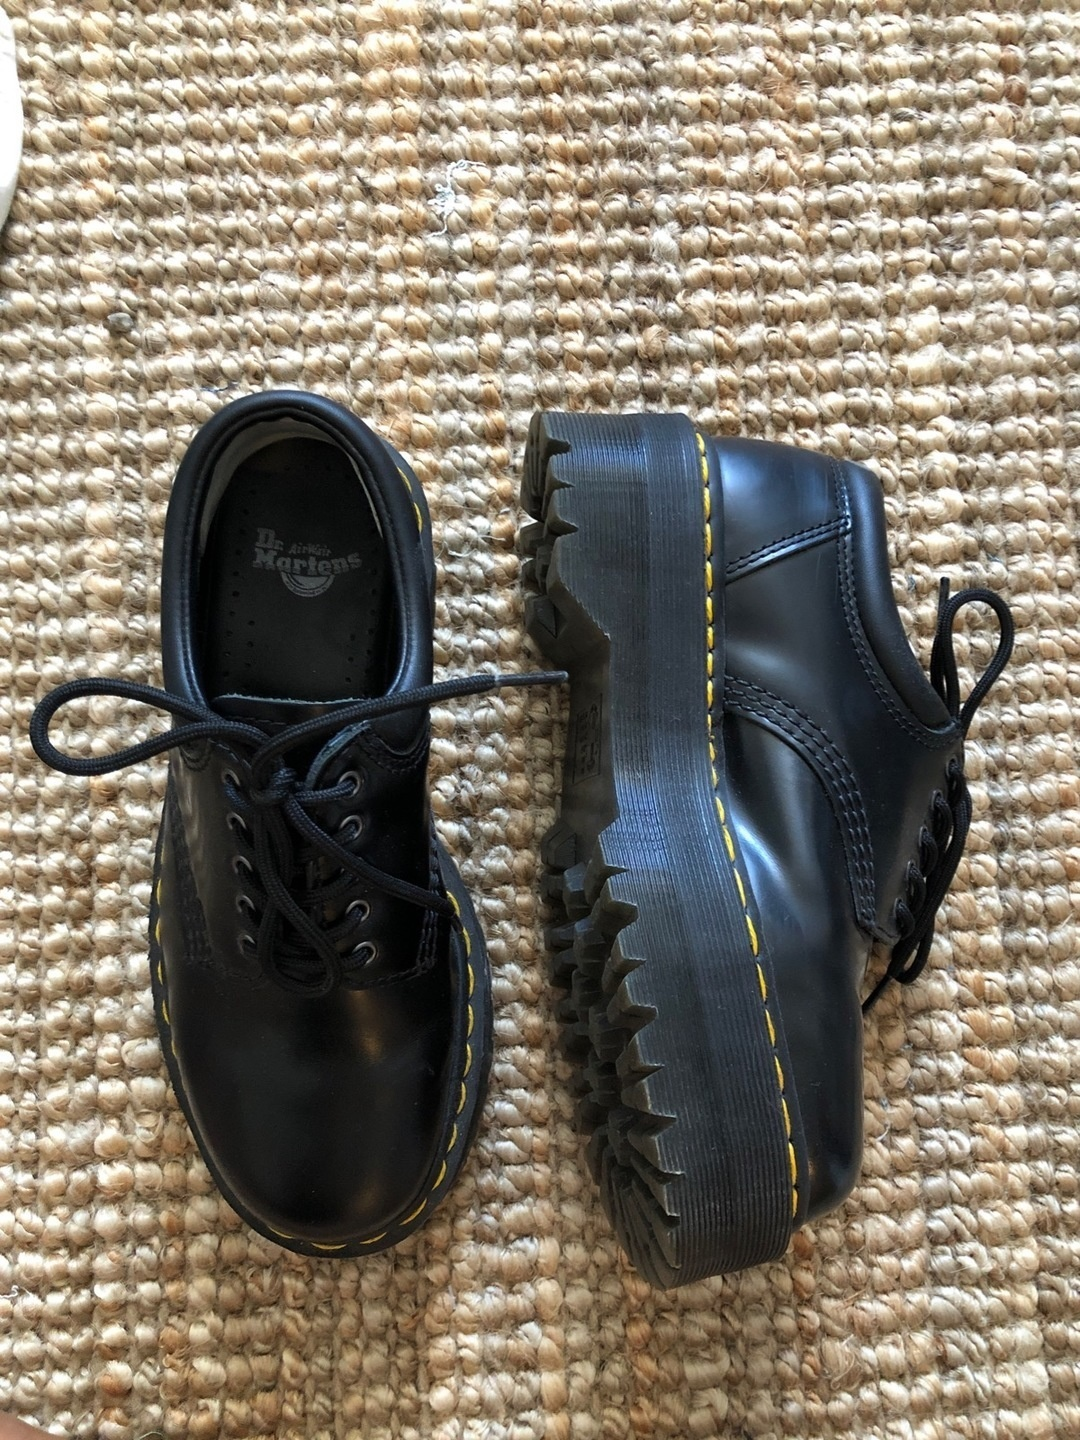 Women's sneakers - DR. MARTENS photo 1